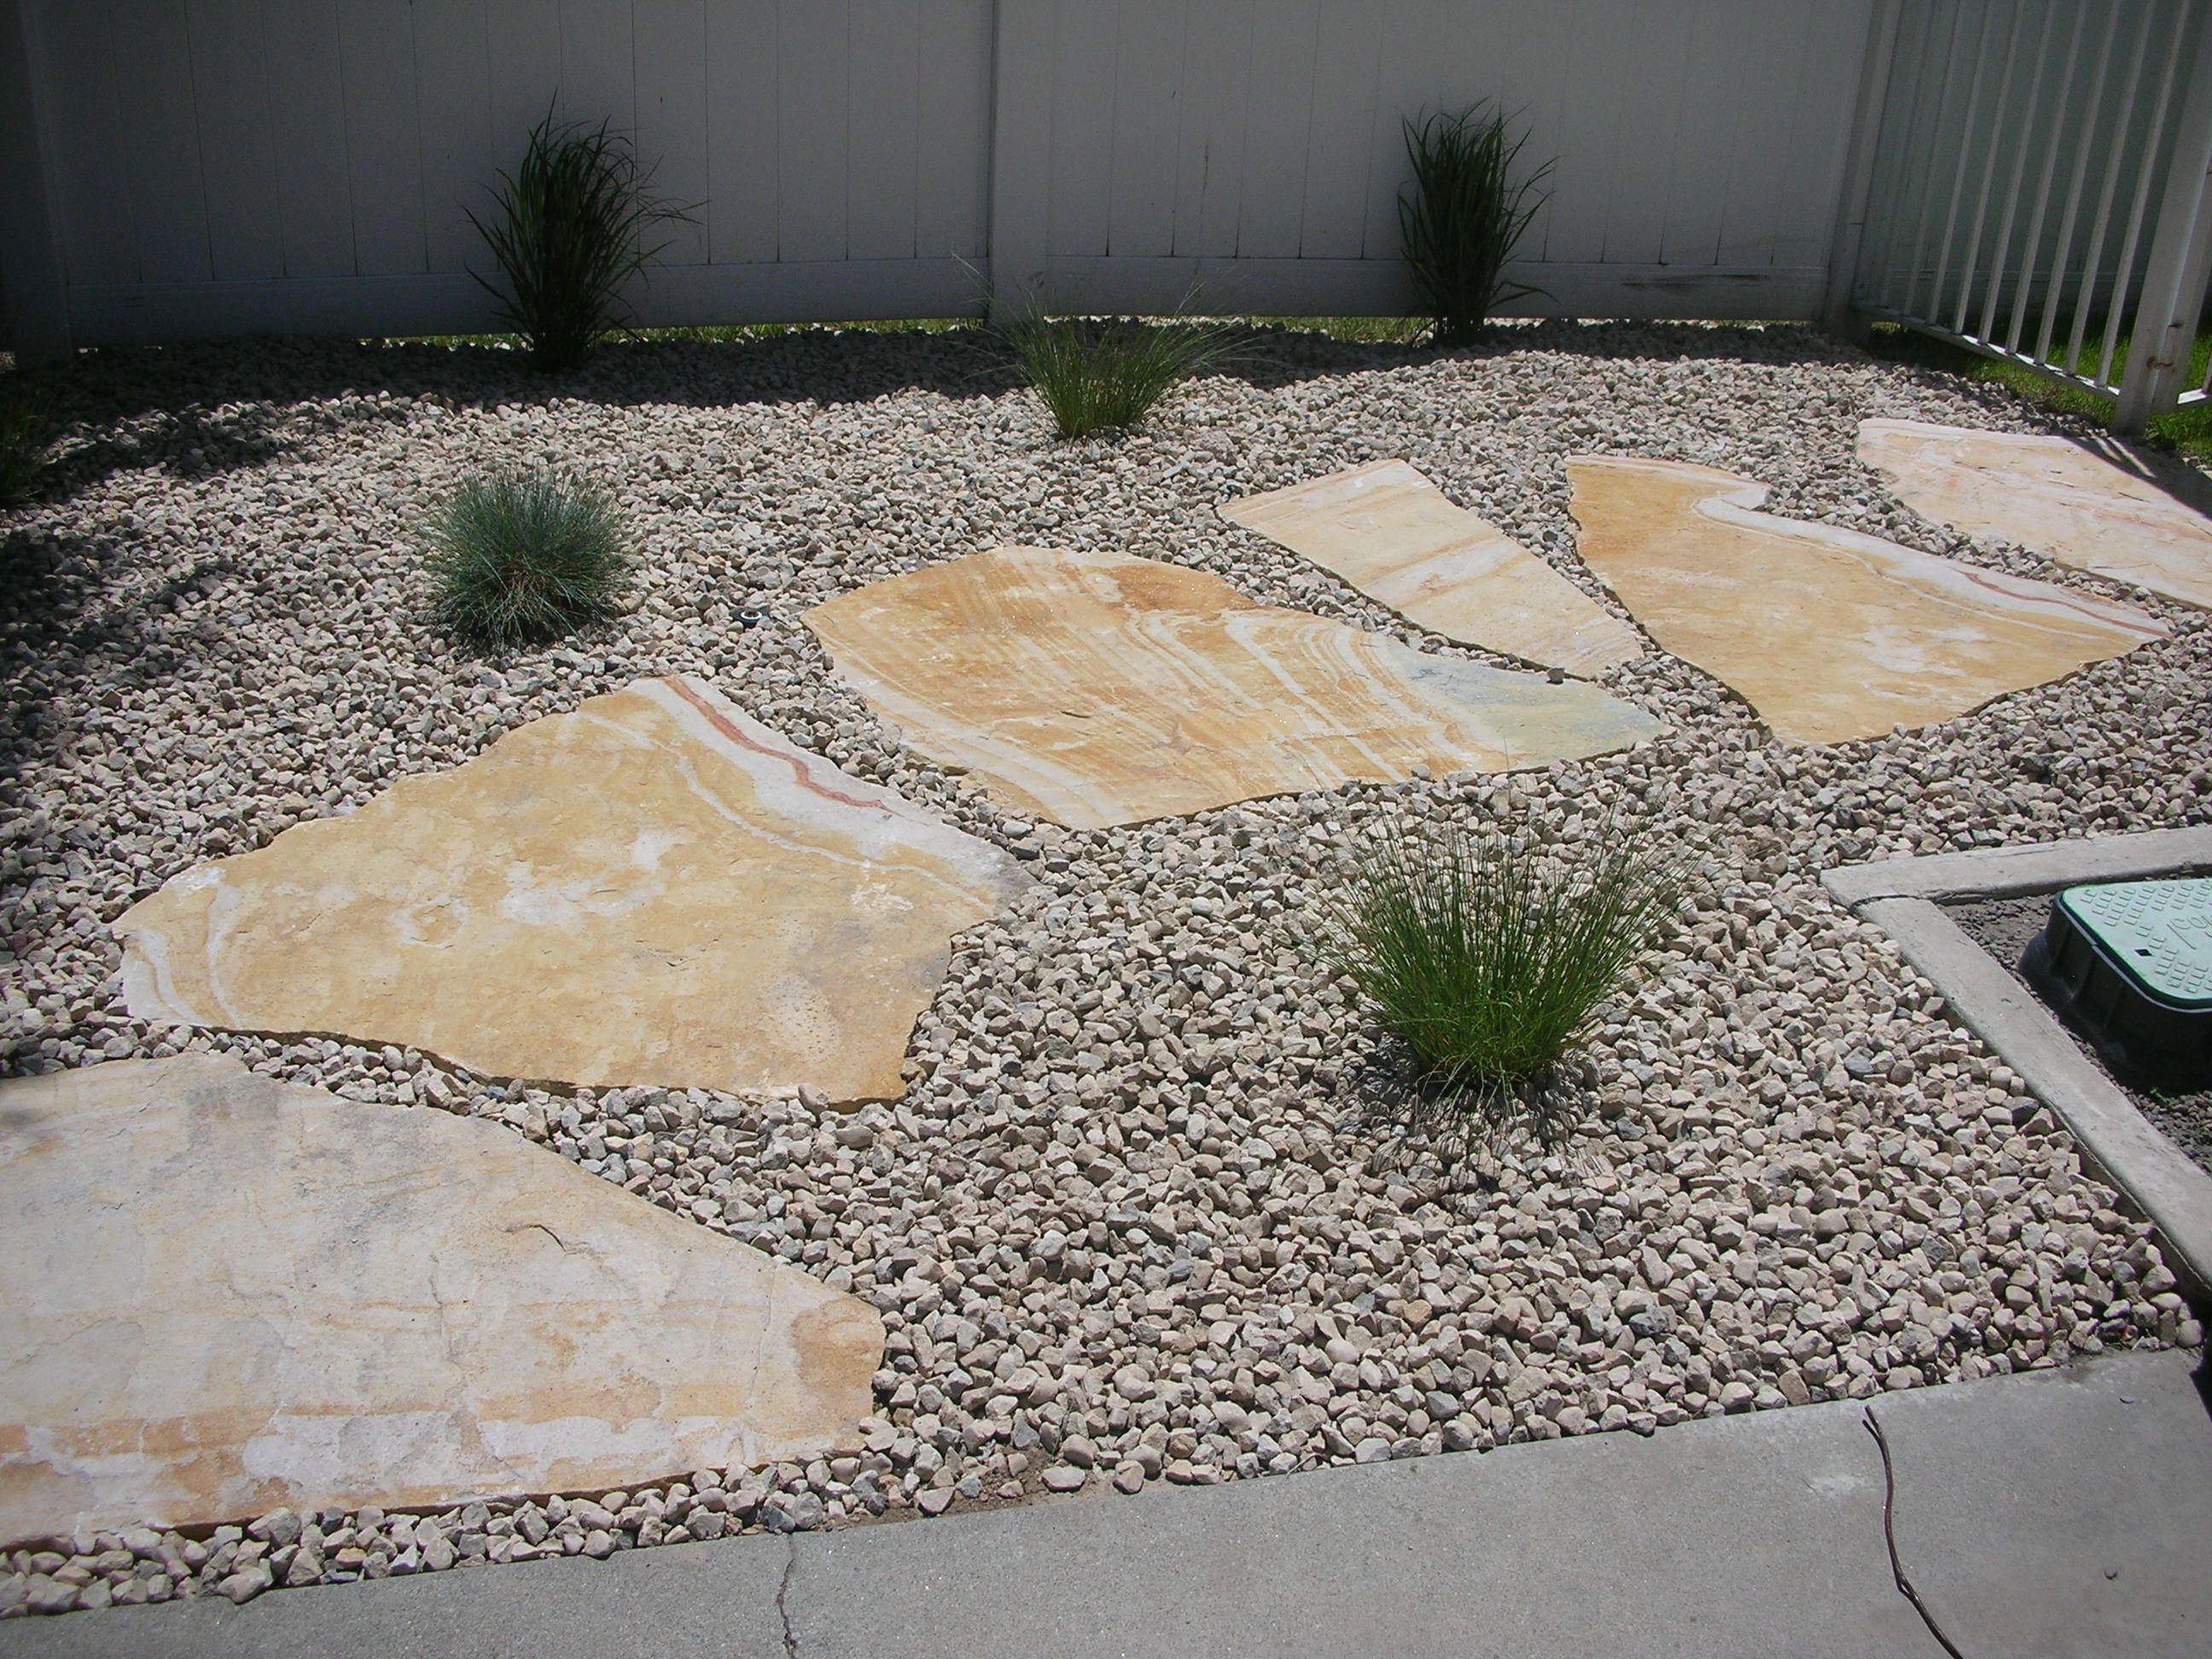 Google Image Result For Http://scenicyard.files.wordpress.com/ · Grass  PaversFlagstone PathwayStone ...